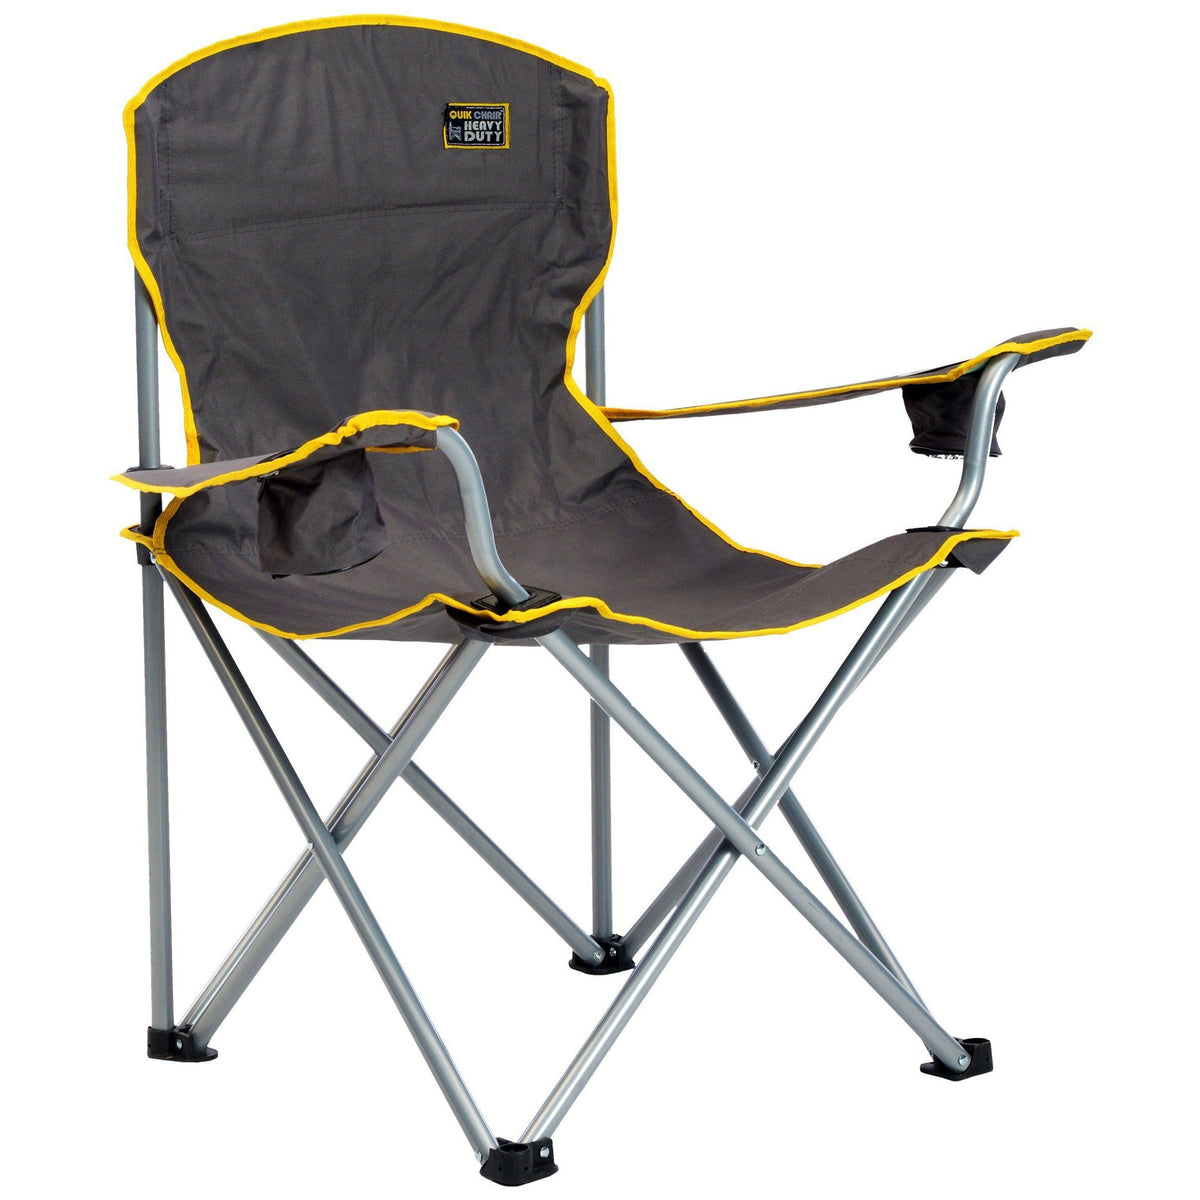 QuikShade 150239 Quik Chair Heavy Duty Folding Camp Chair - Grey